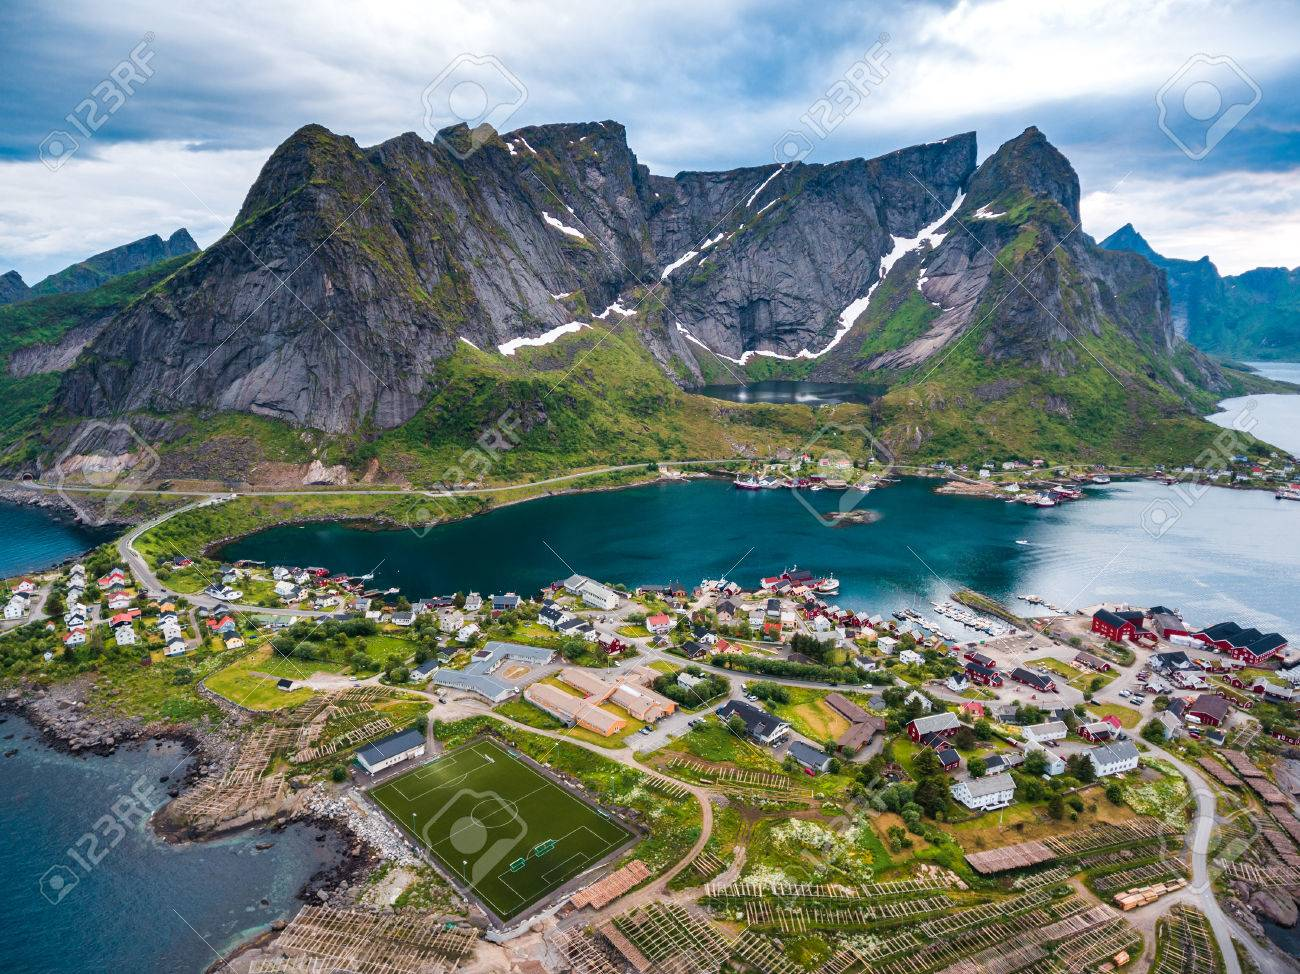 Lofoten is an archipelago in the county of Nordland, Norway. Is known for a distinctive scenery with dramatic mountains and peaks, open sea and sheltered bays, beaches and untouched lands. - 64786643